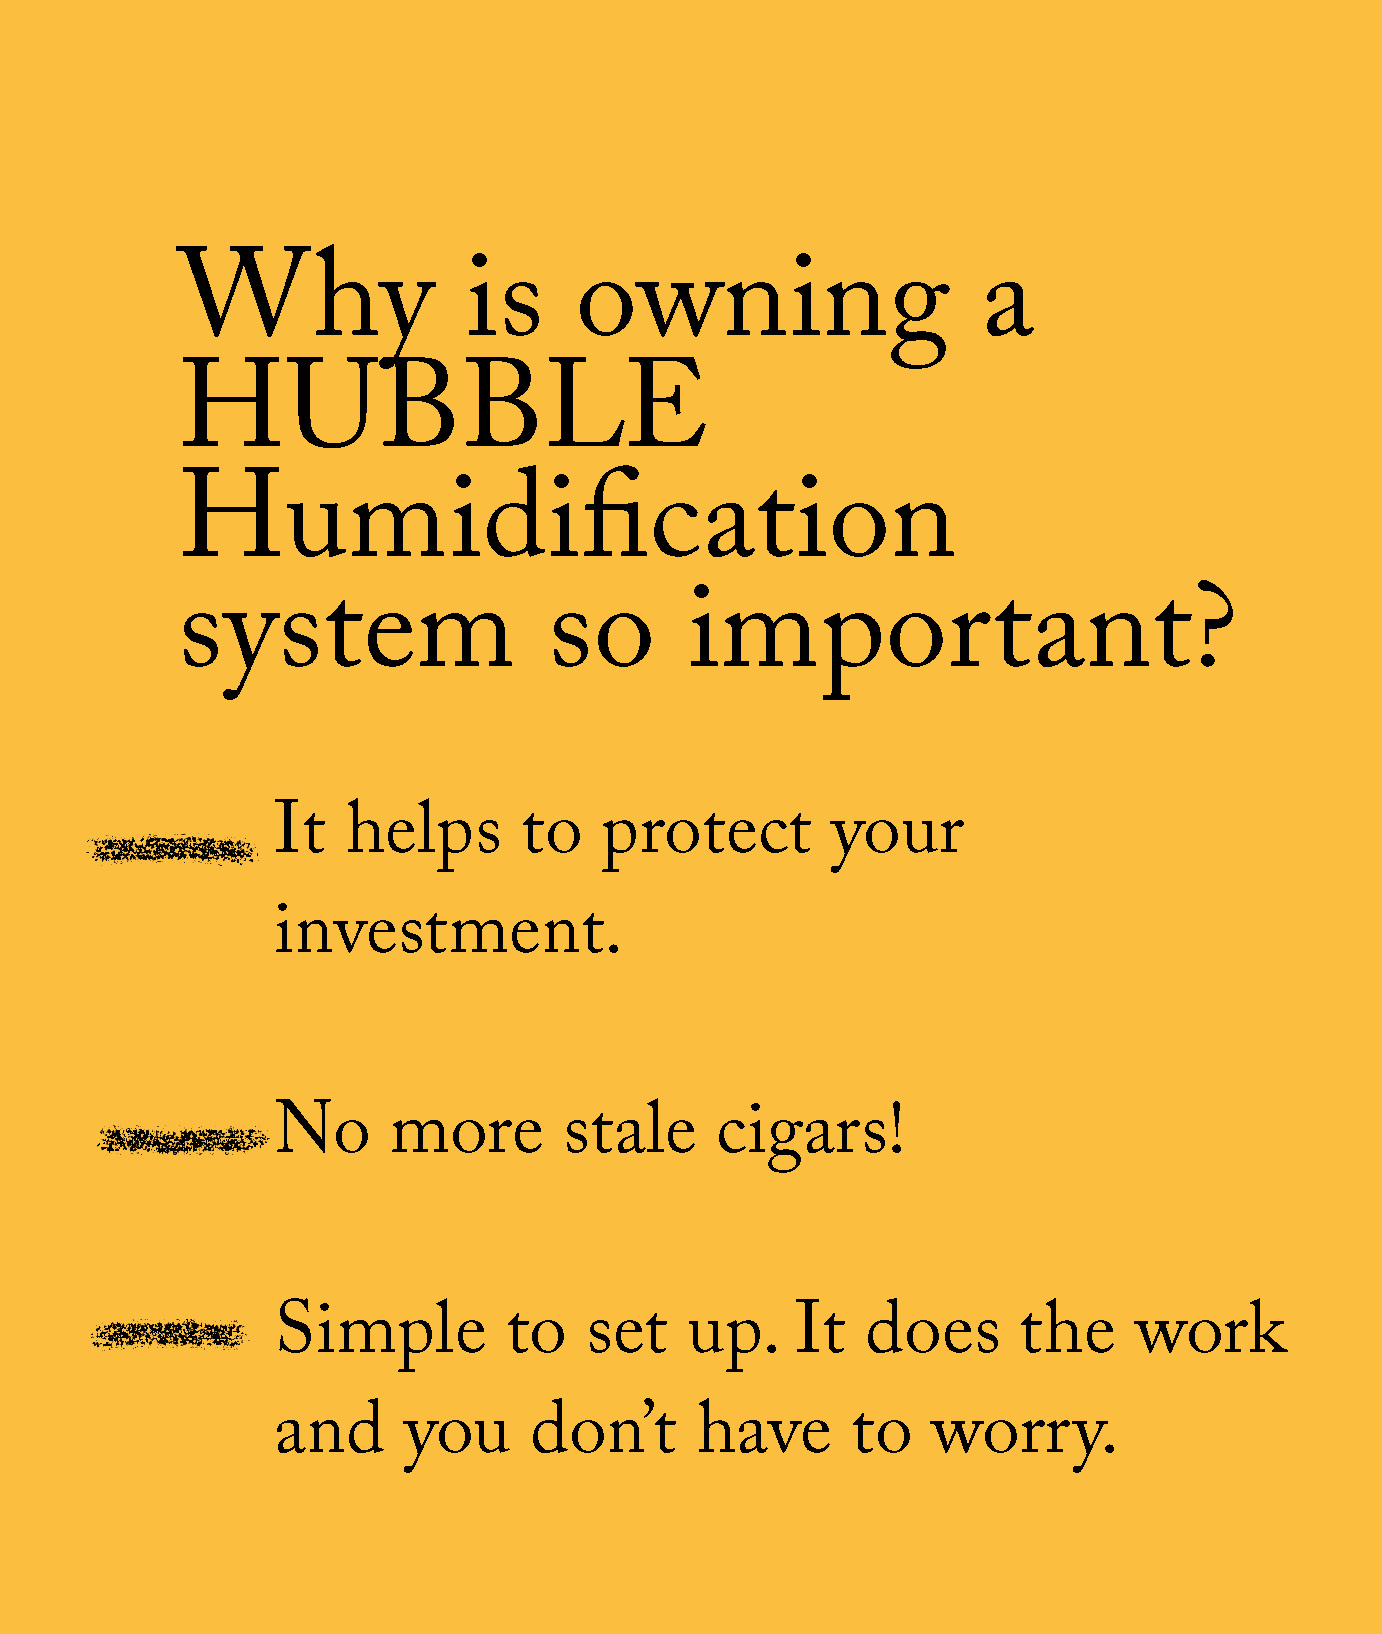 Why HUBBLE?